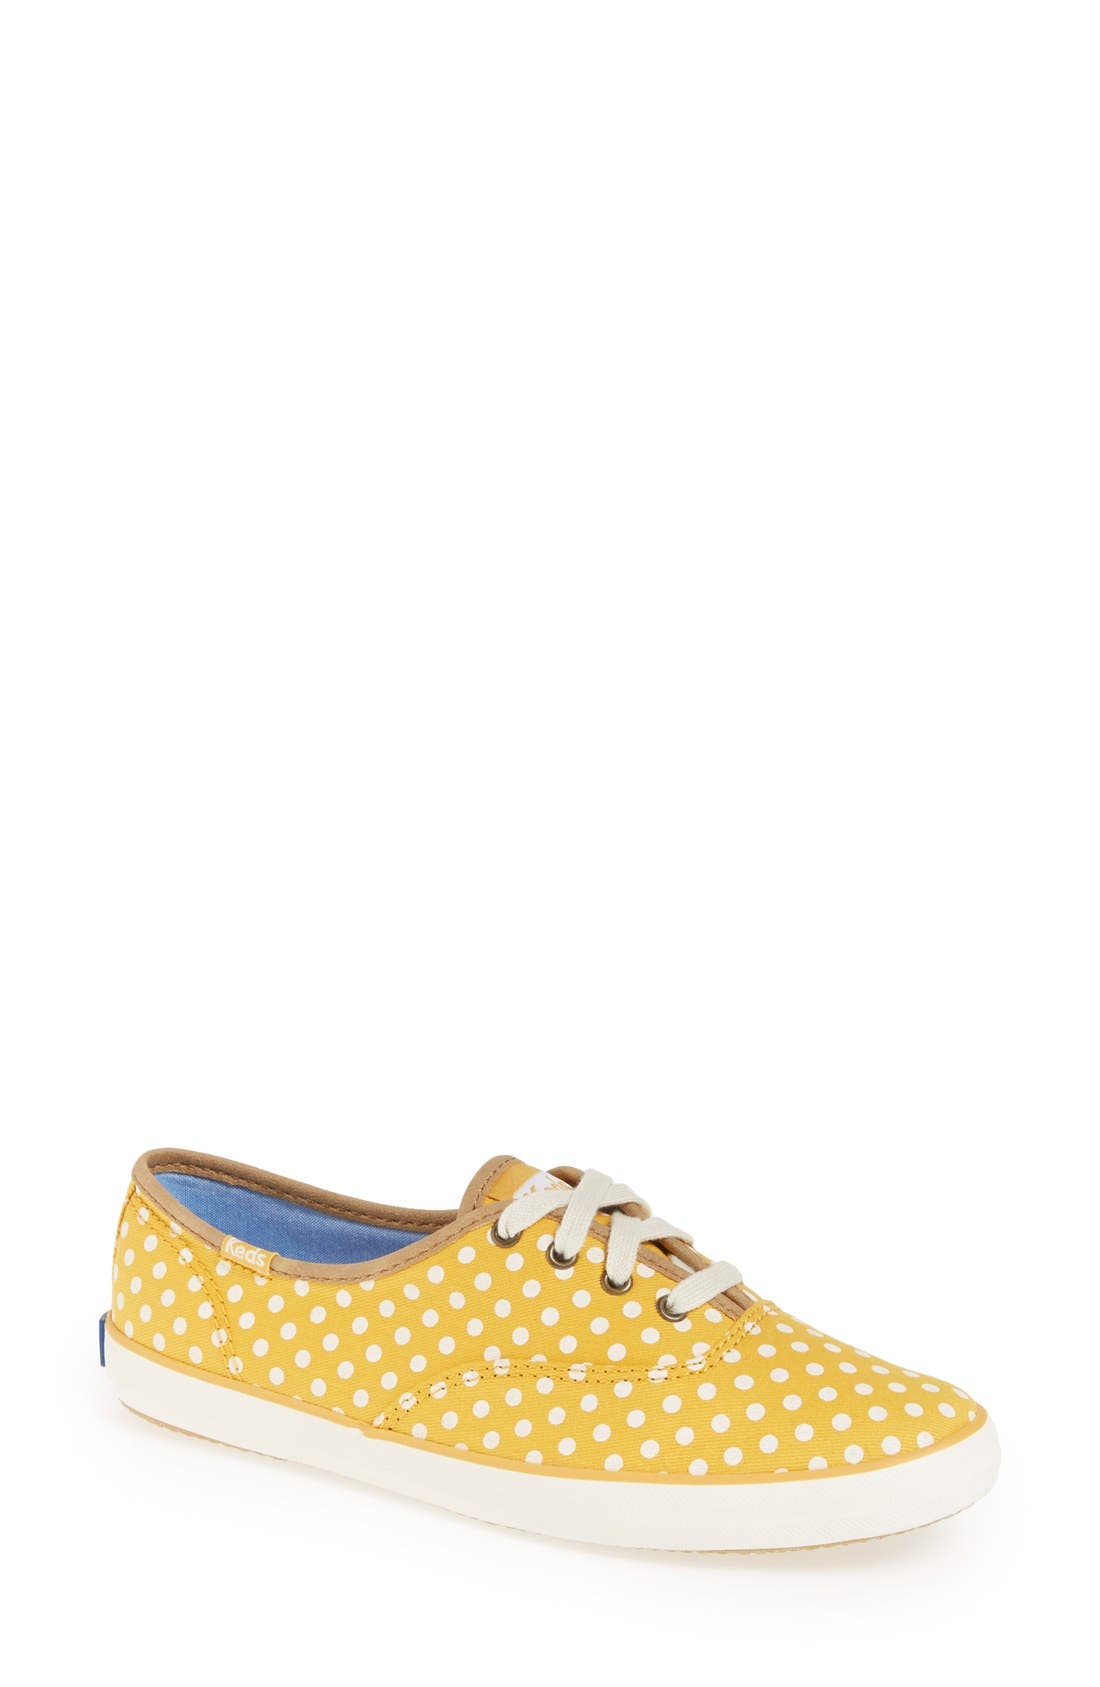 Main Image - Keds® 'Champion - Dot' Sneaker (Women)